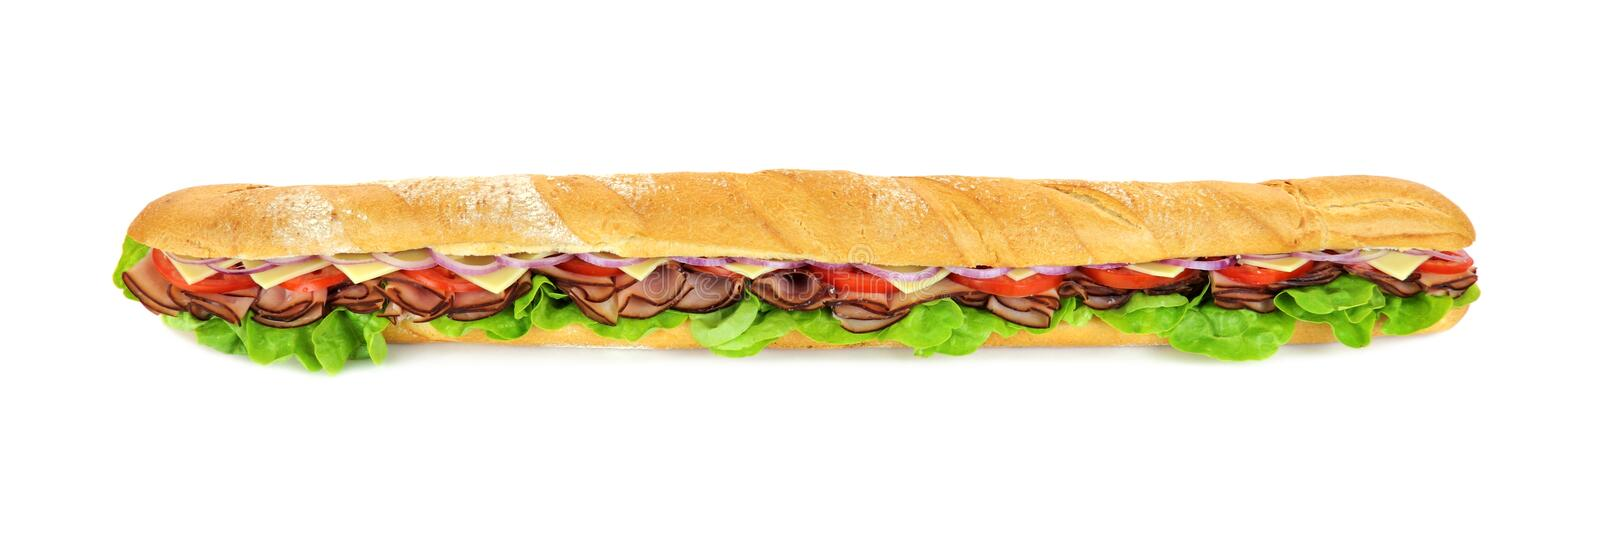 Giant Sub. Giant ham, tomato, lettuce, cheese and onion sub ready to serve royalty free stock photo